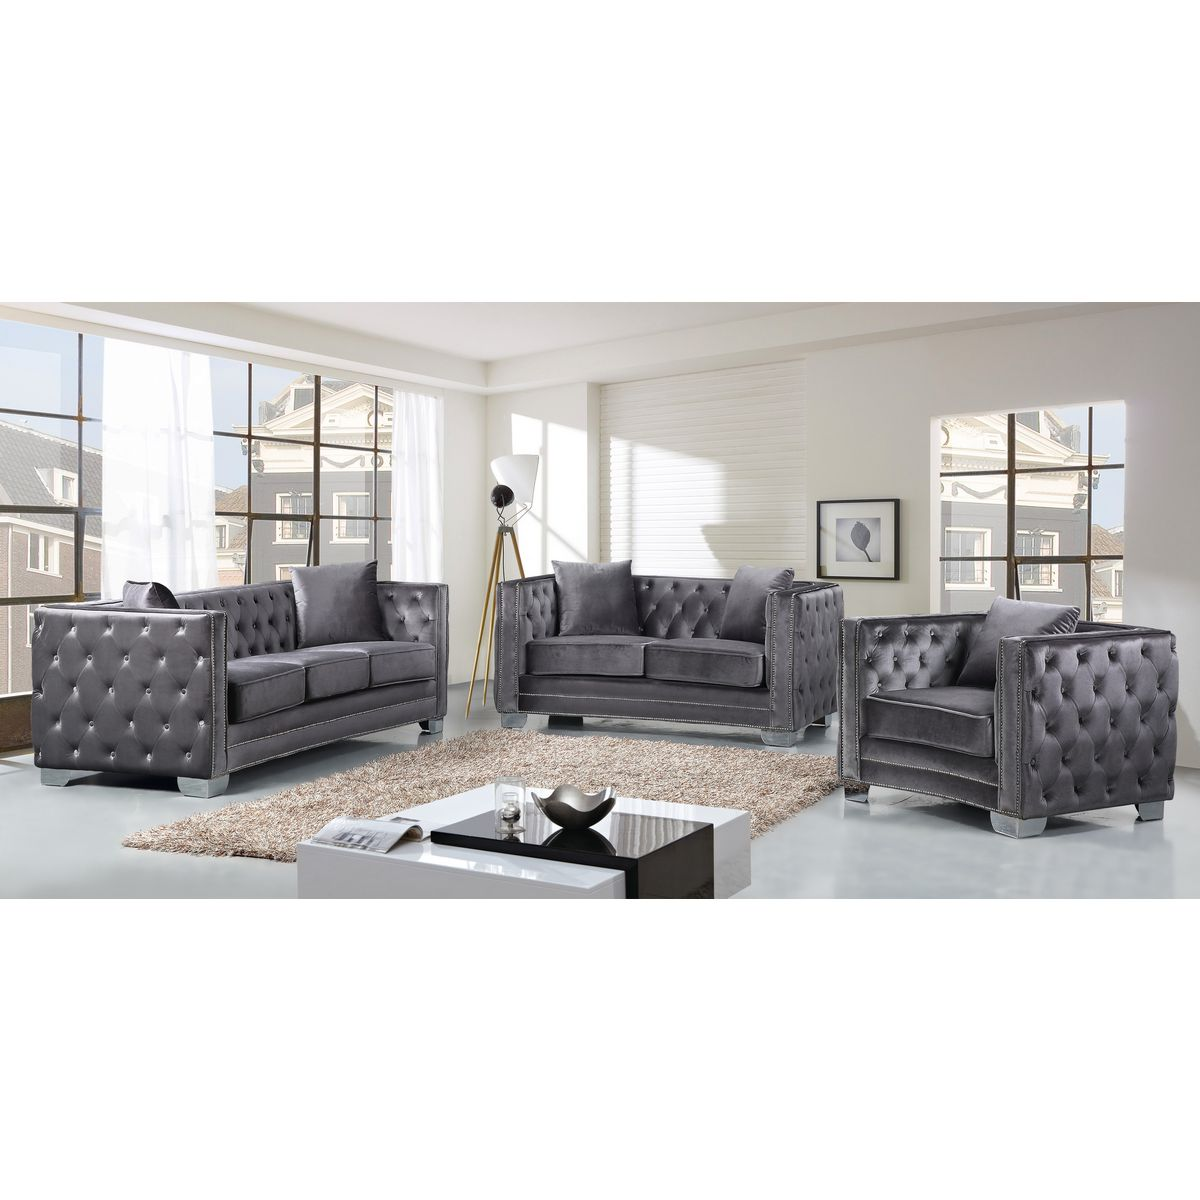 Meridian Furniture 648GRY-C Reese Grey Velvet Arm Chair w/ Tufted ...